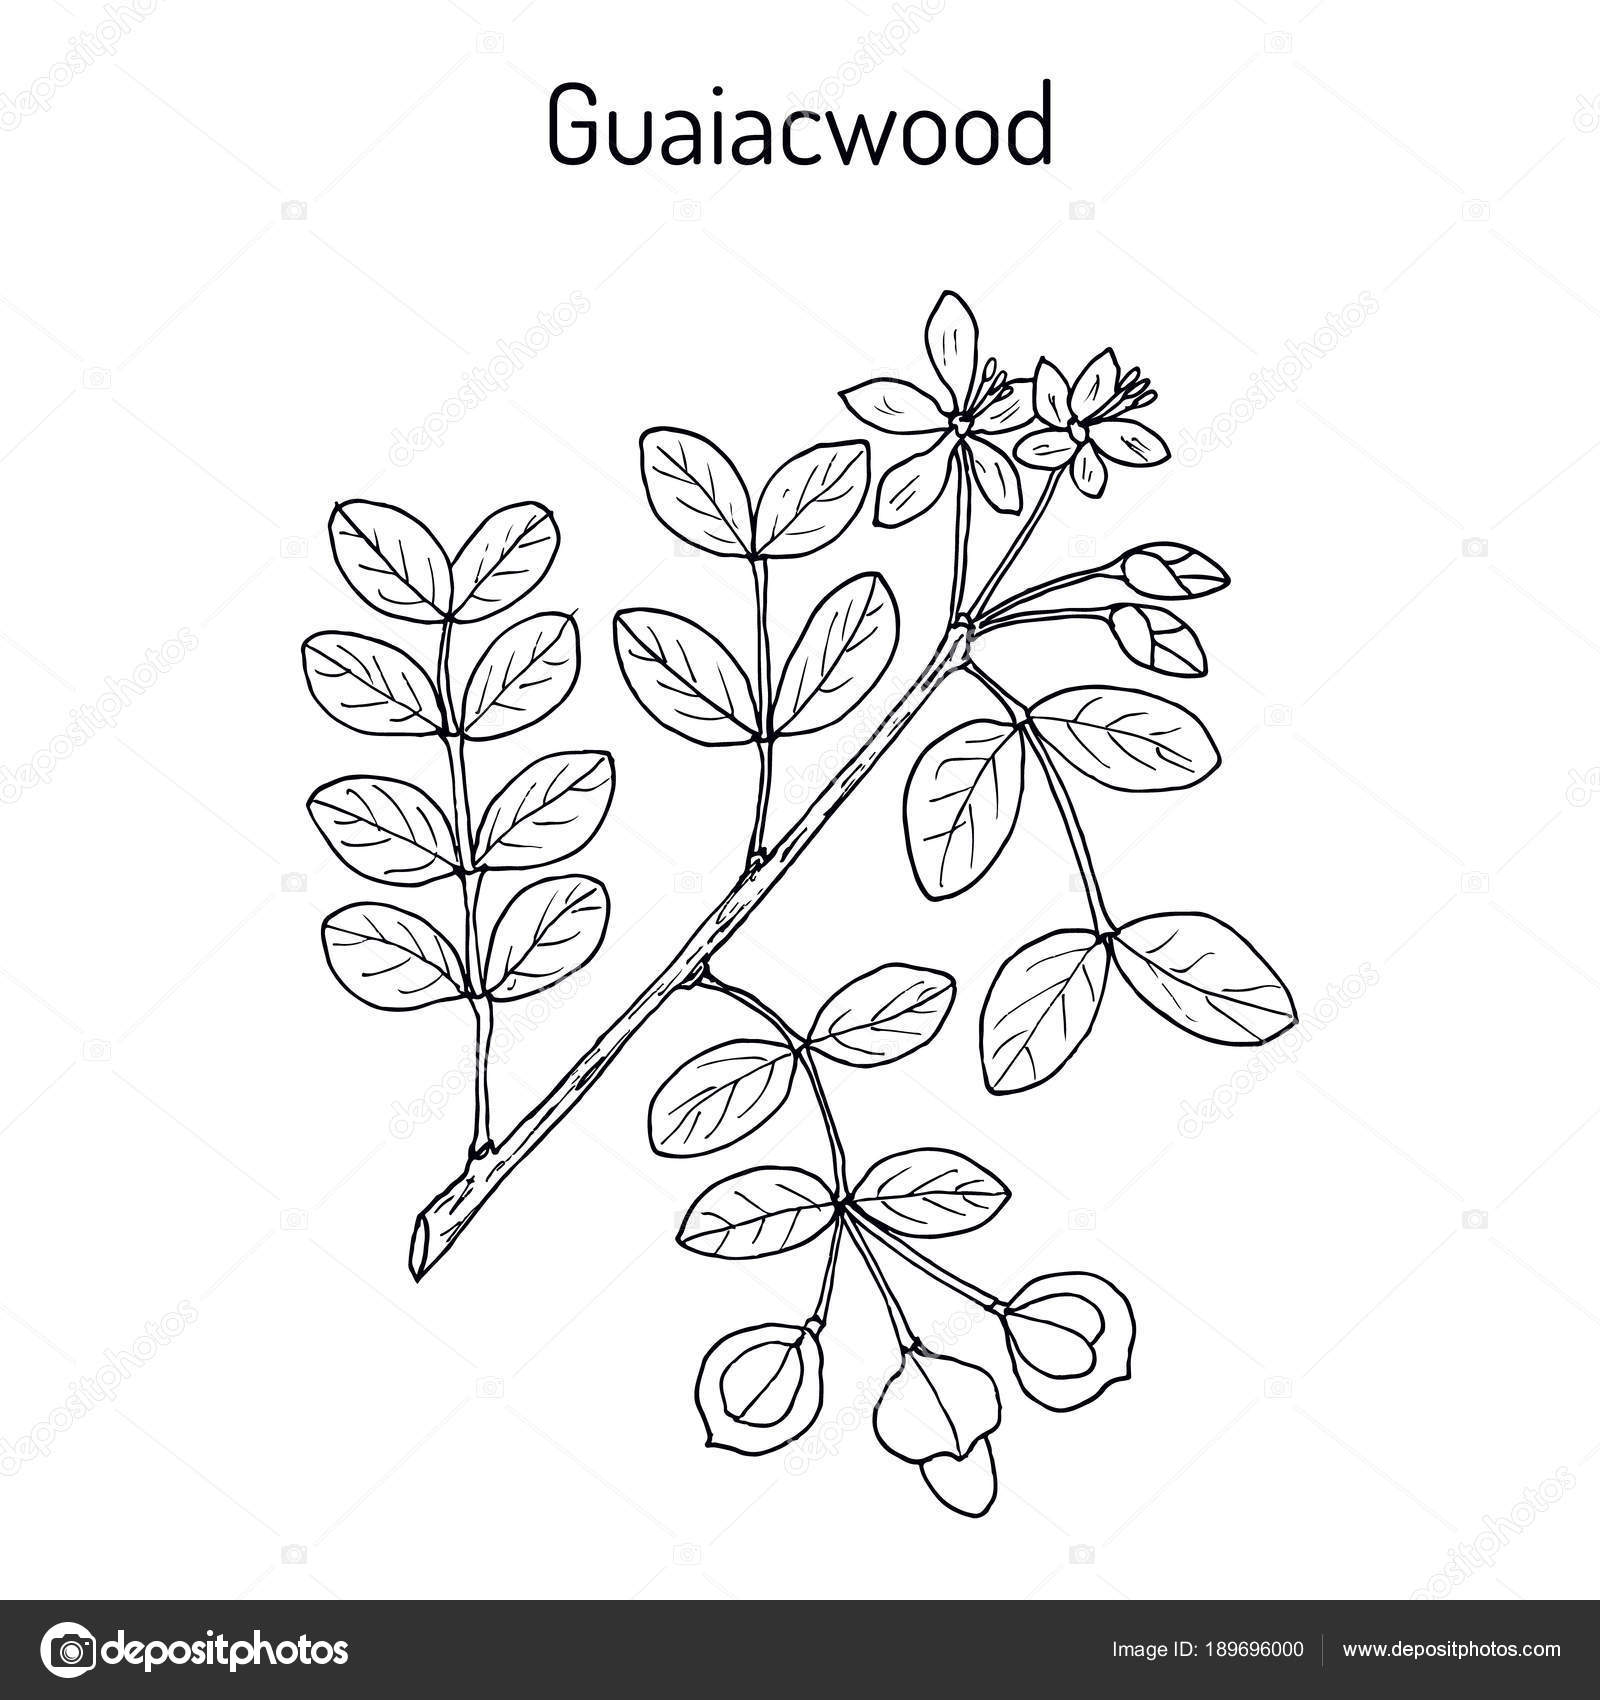 Guaiacwood Guaiacum Officinale Medicinal Plant Stock Vector